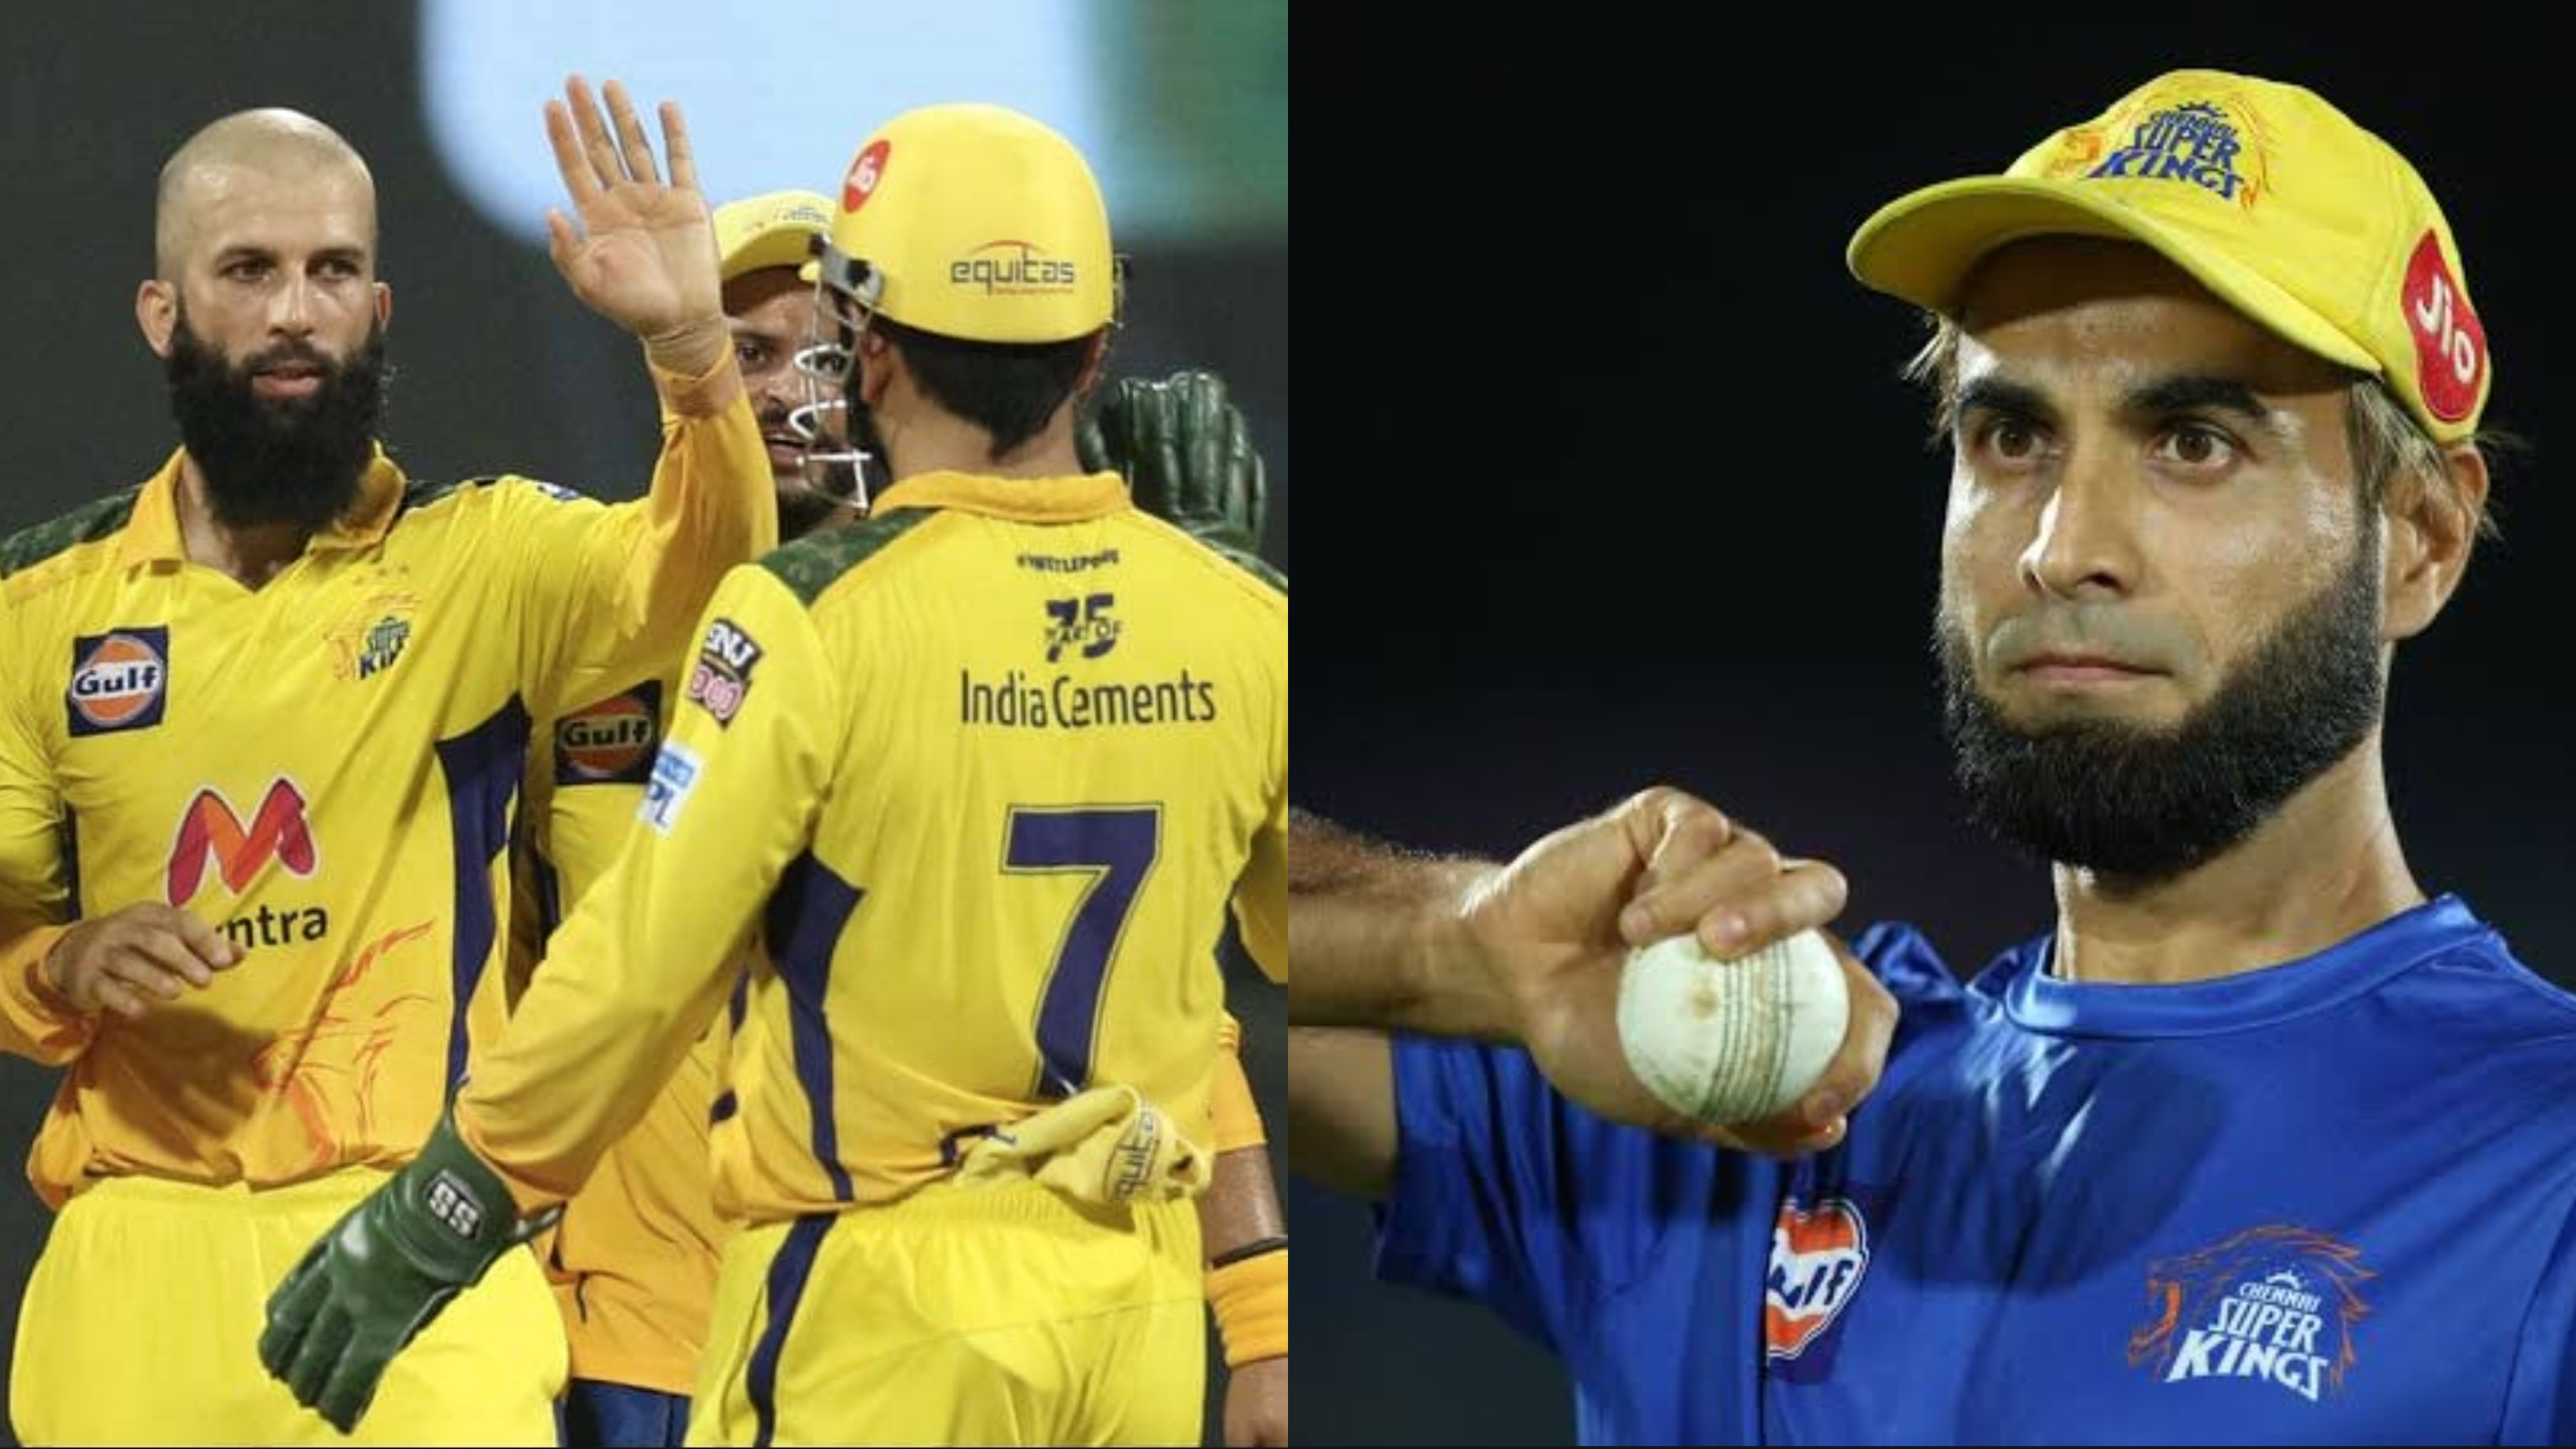 Imran Tahir responds to fan's question on when he will get chance to play for CSK